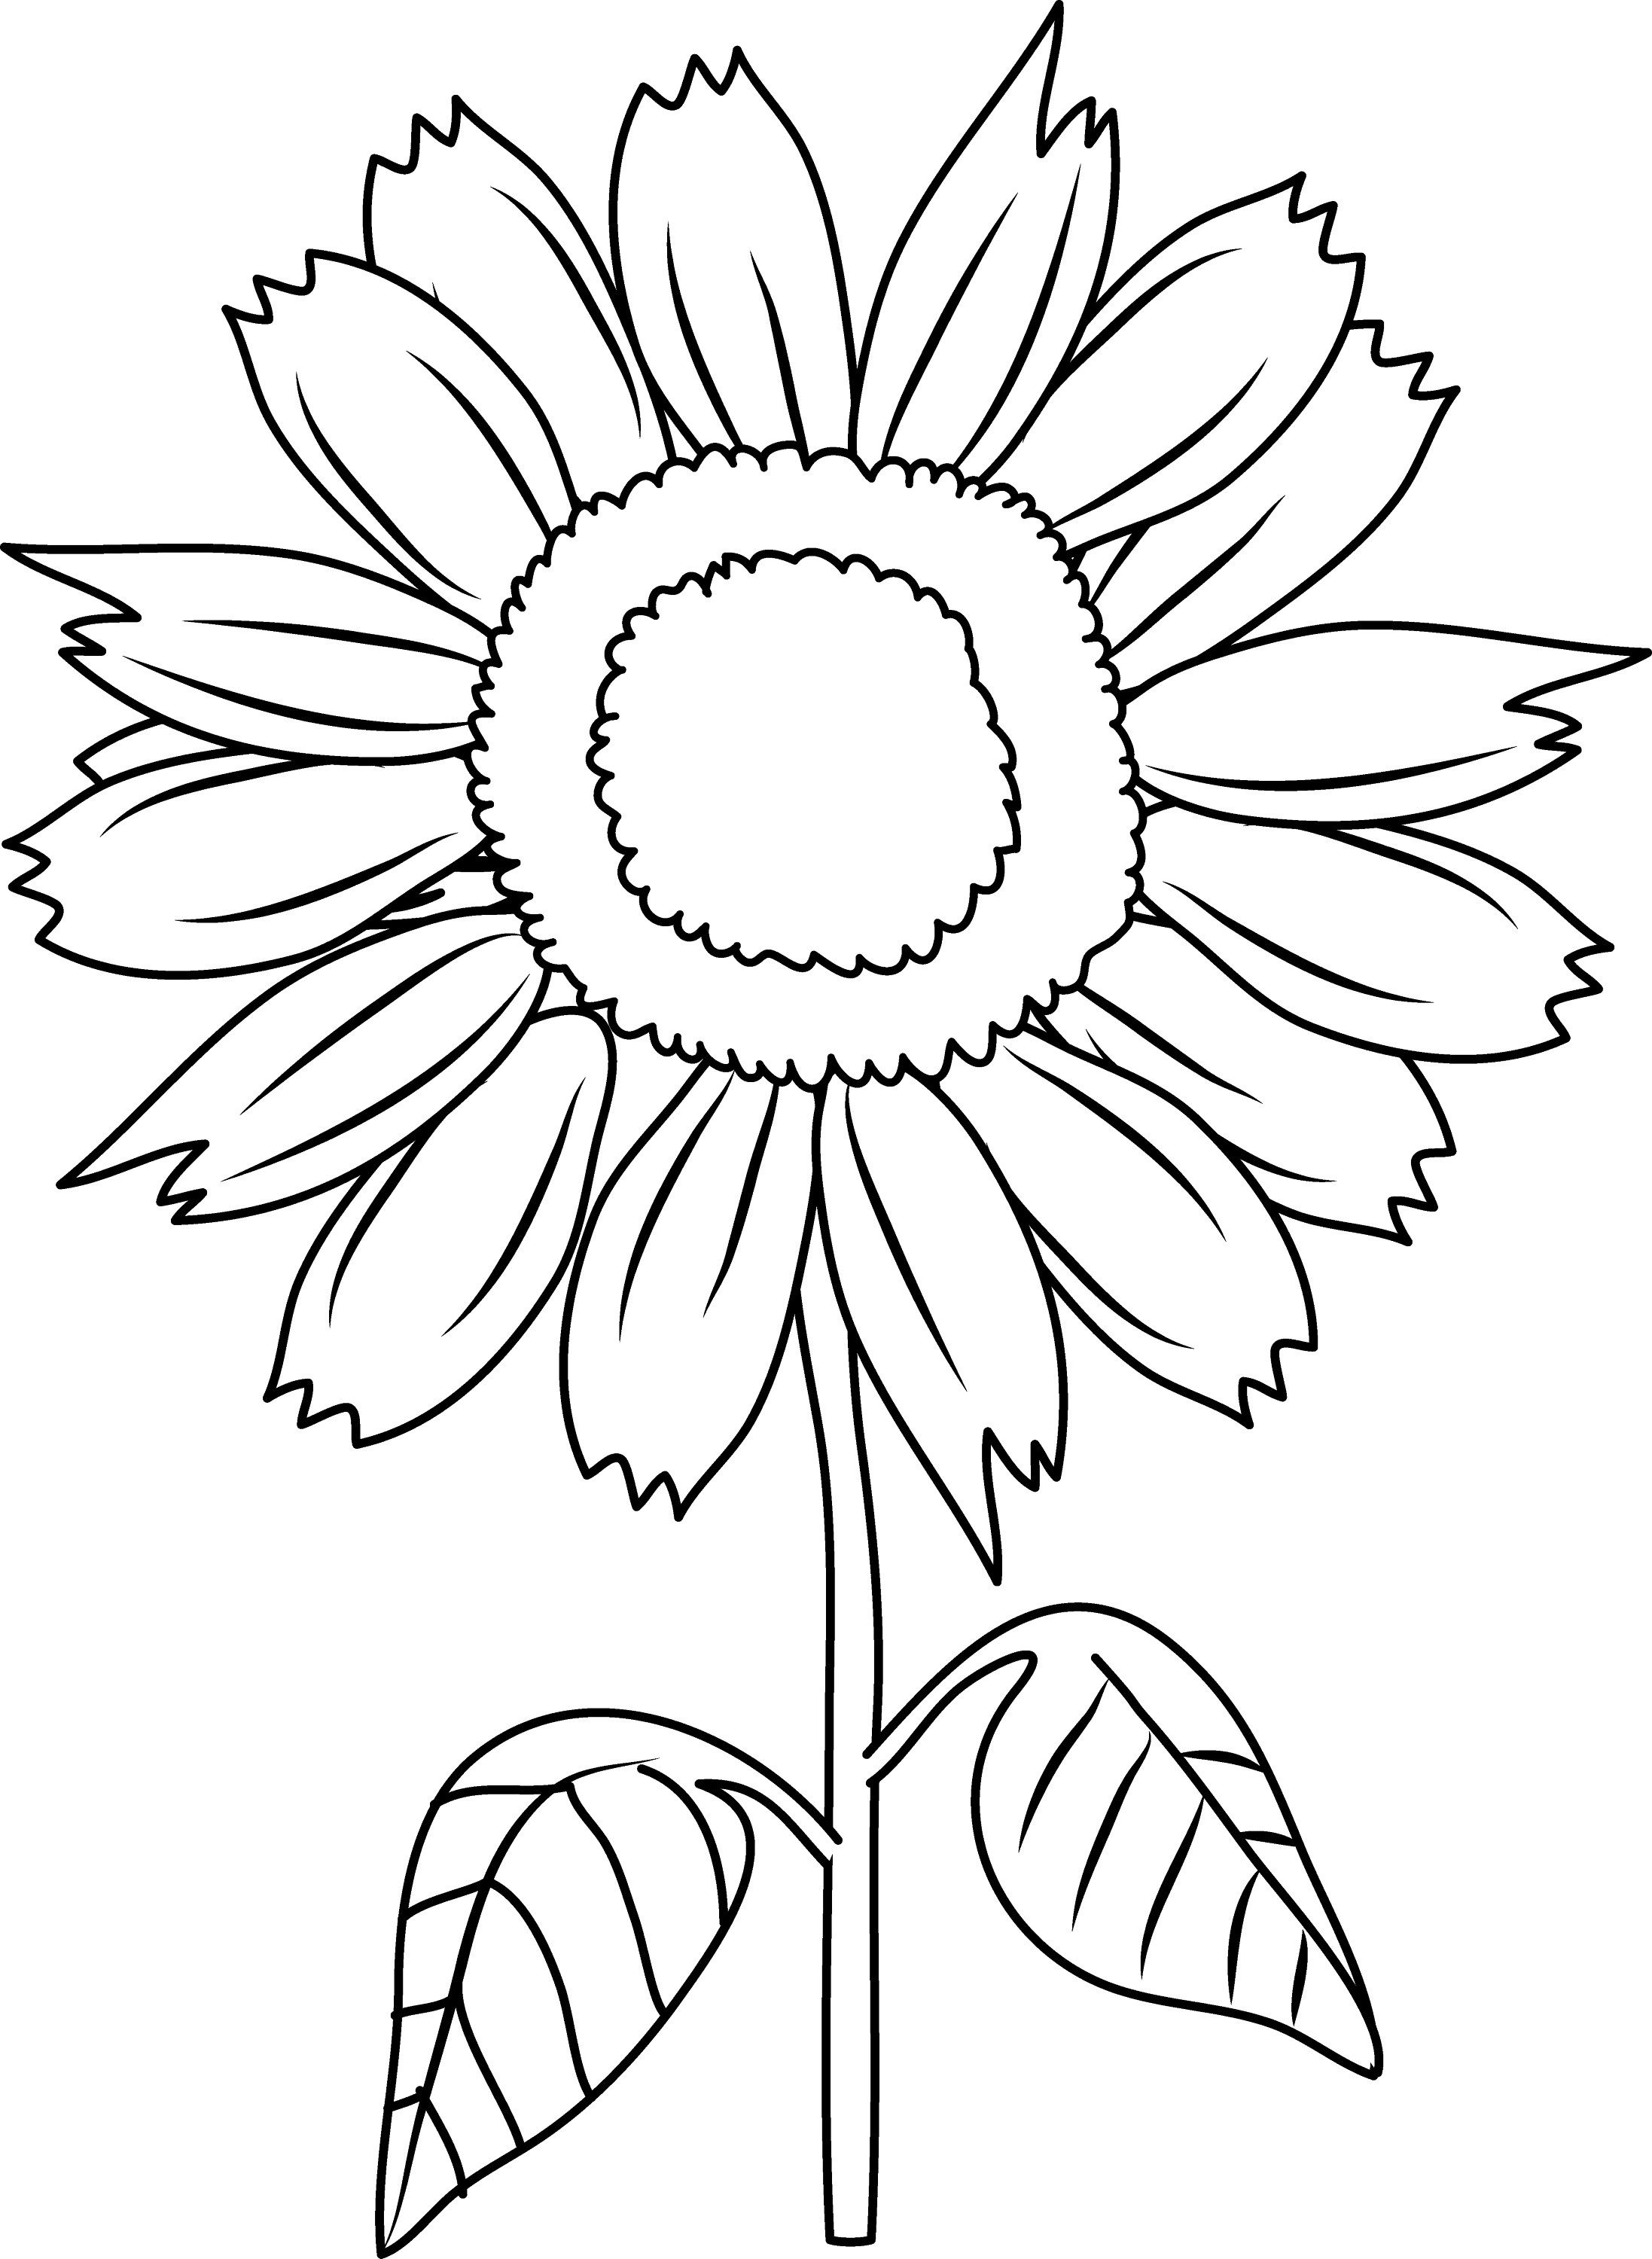 coloring flower clipart black and white pretty sunflower coloring page free clip art black white and flower coloring clipart